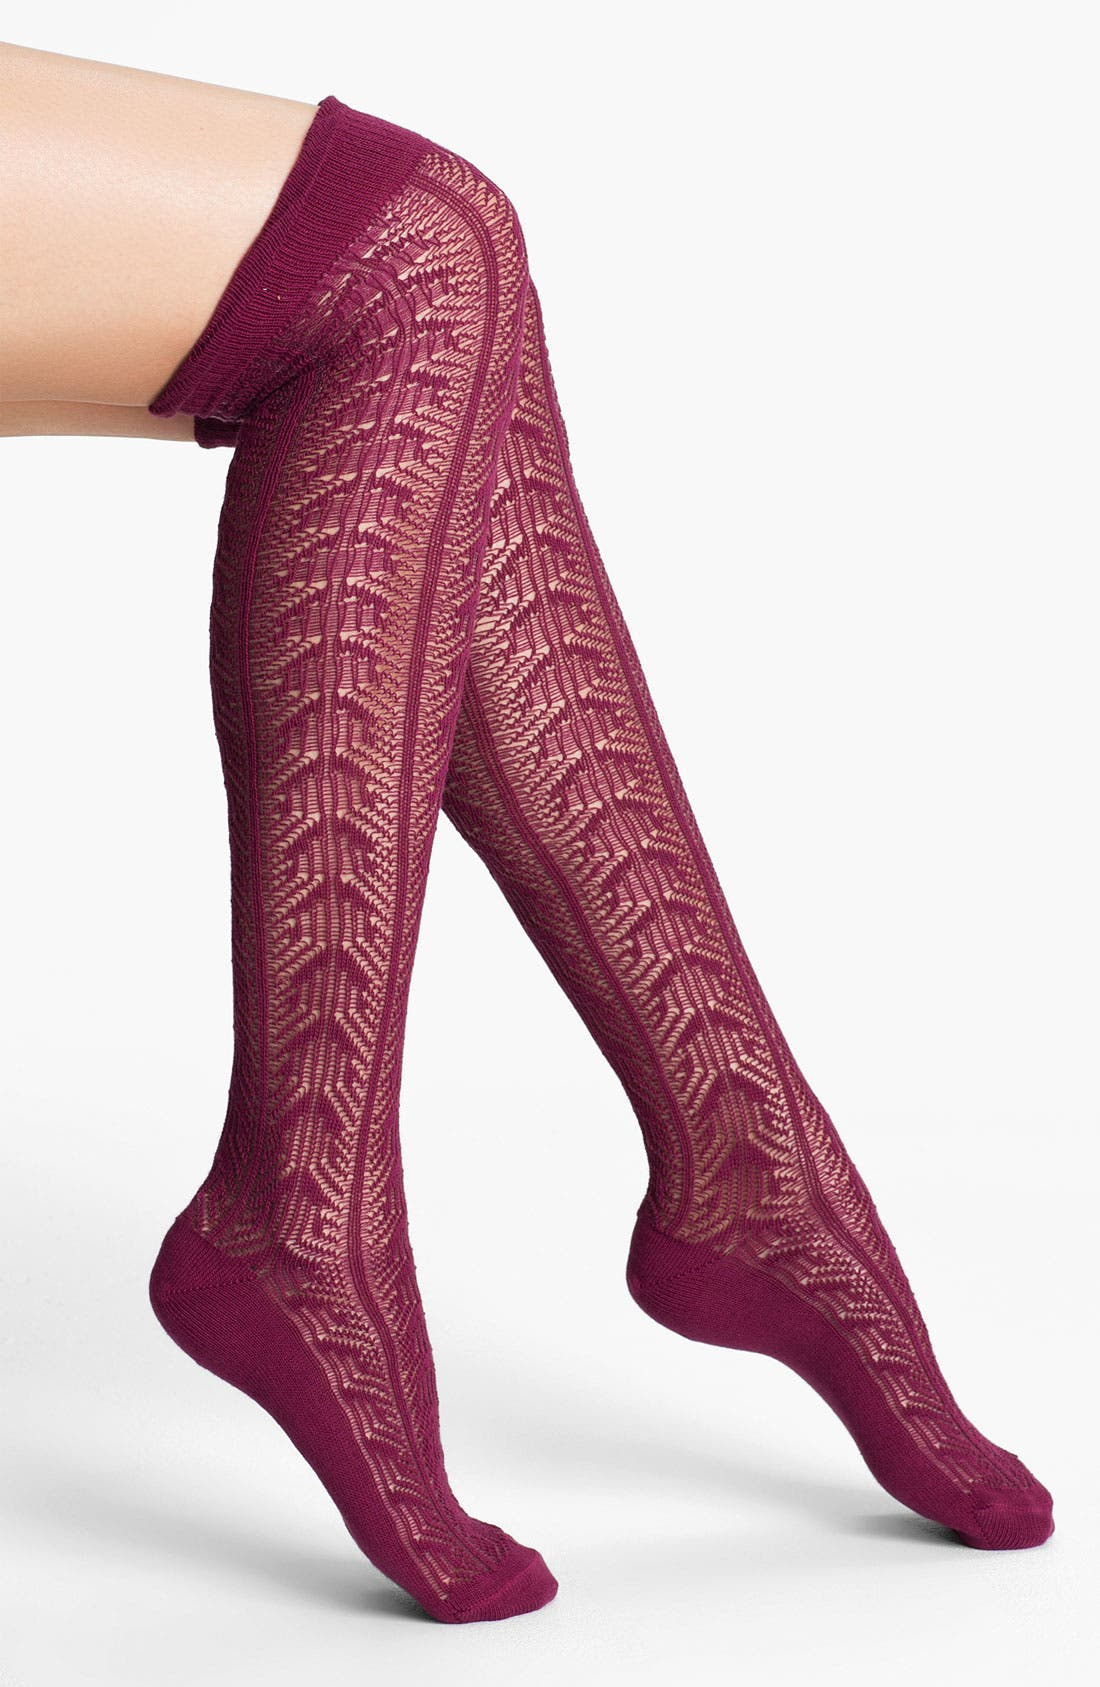 Main Image - Nordstrom 'Frill of It' Over the Knee Socks